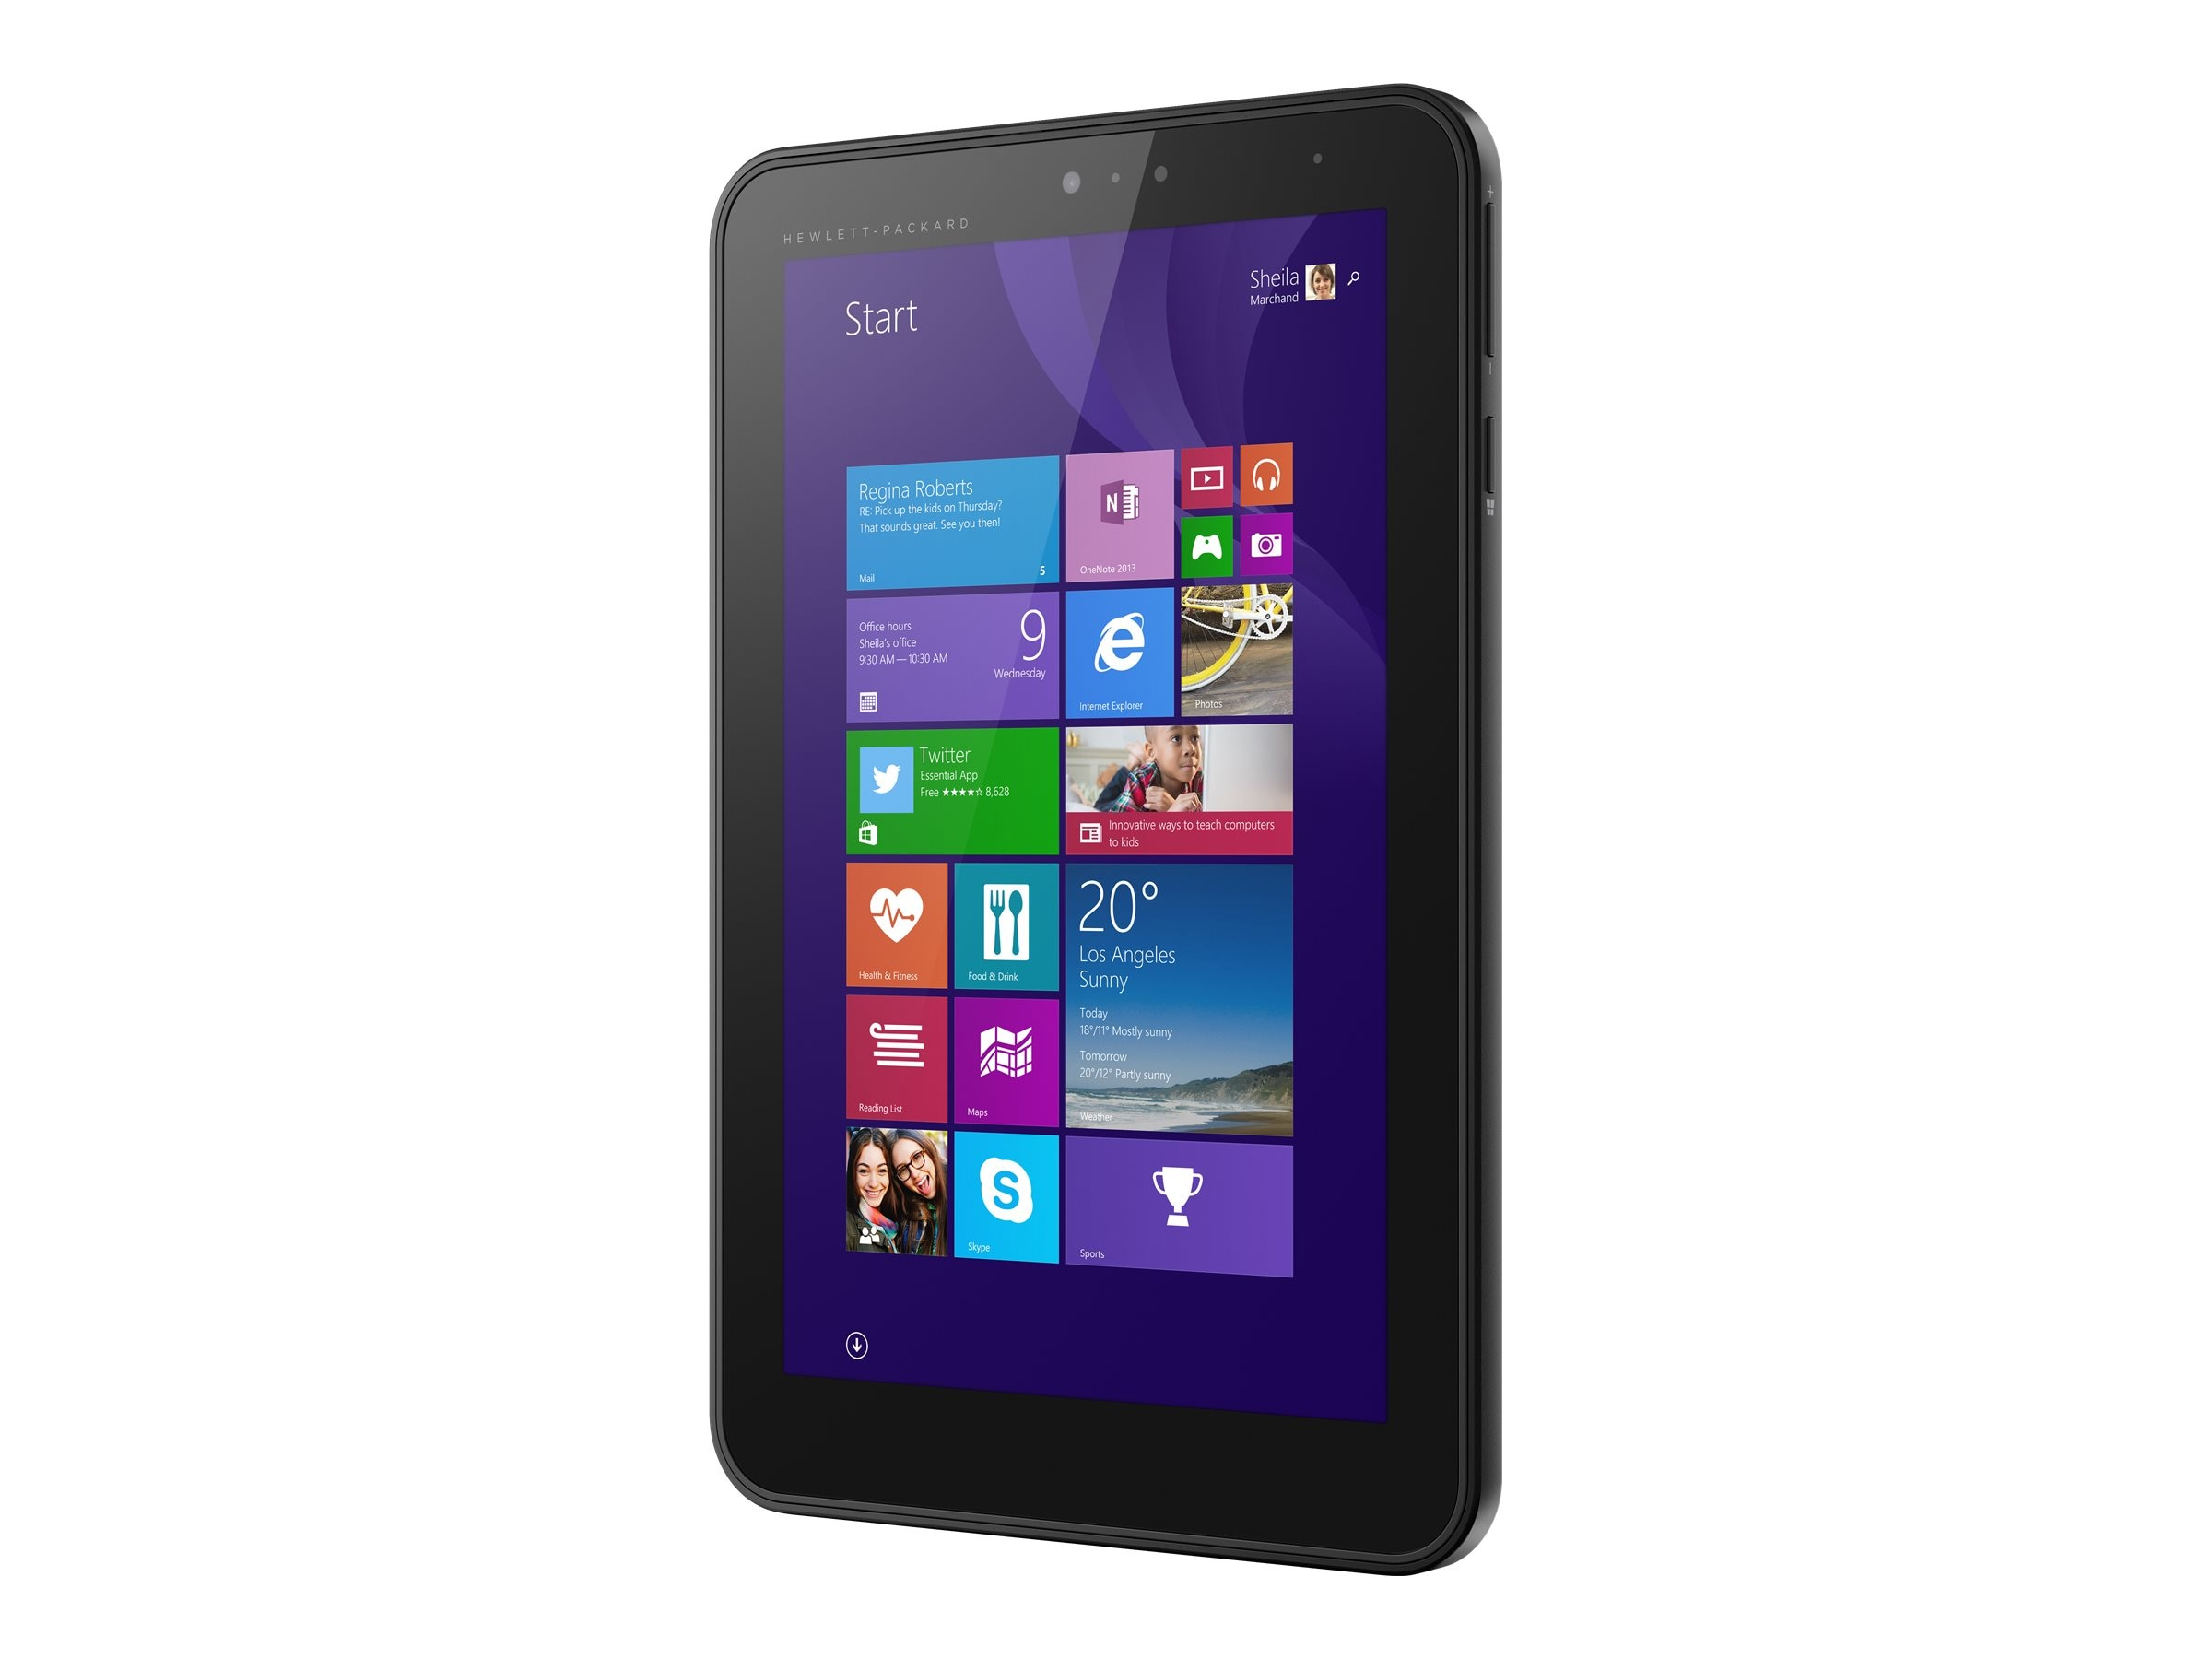 HP Pro Tablet 408 G1 1.33GHz processor Windows 8.1 Pro, L4A34UT#ABA